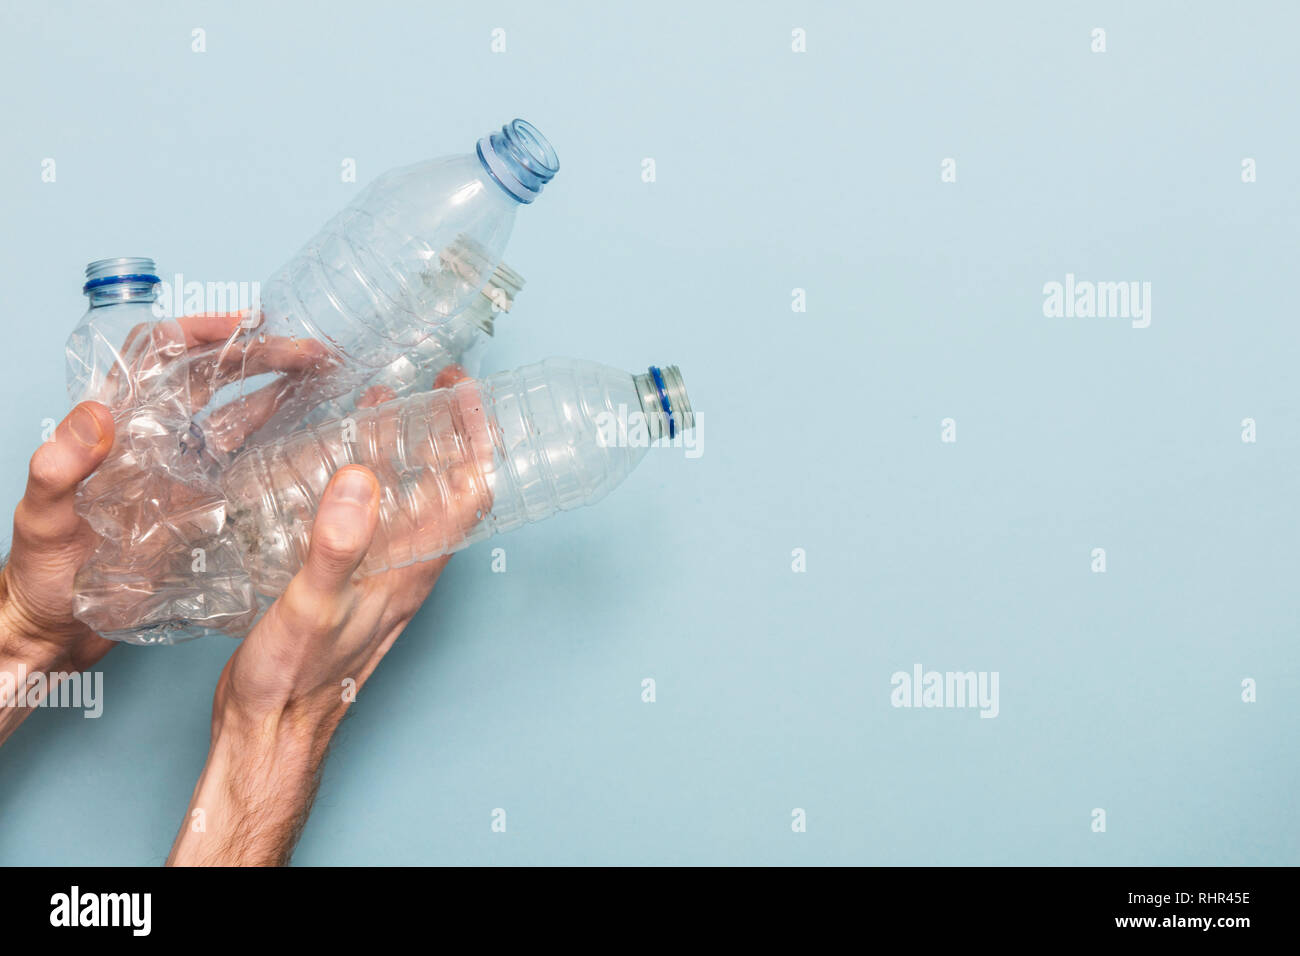 Hand holding empty plastic bottle recycling against a blue background - Stock Image